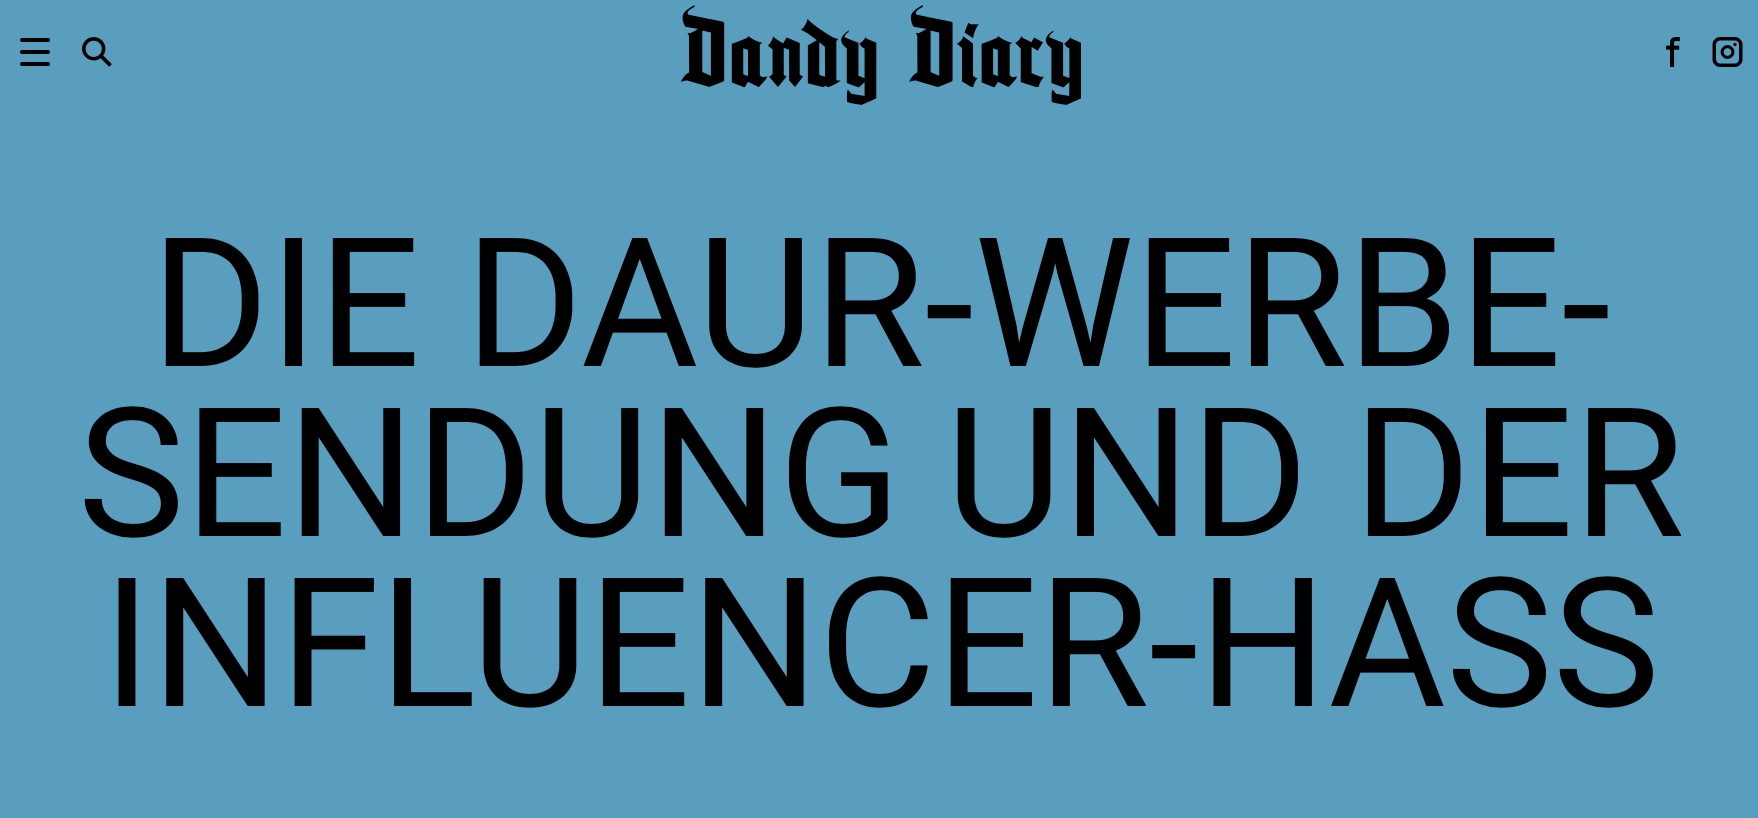 Dandy Diary Influencer Marketing Hass